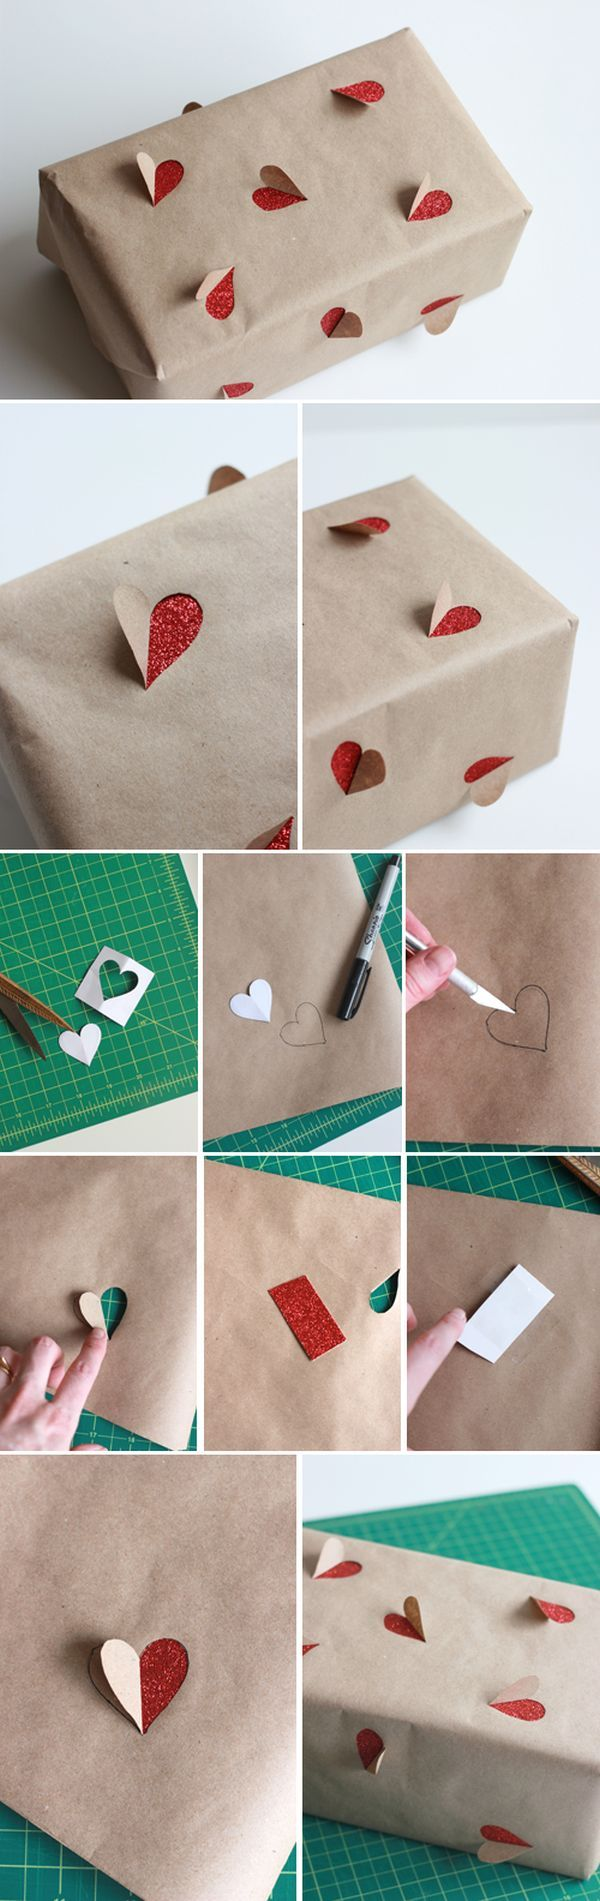 11 Sweet Gift Wrapping Ideas For Valentine's Day